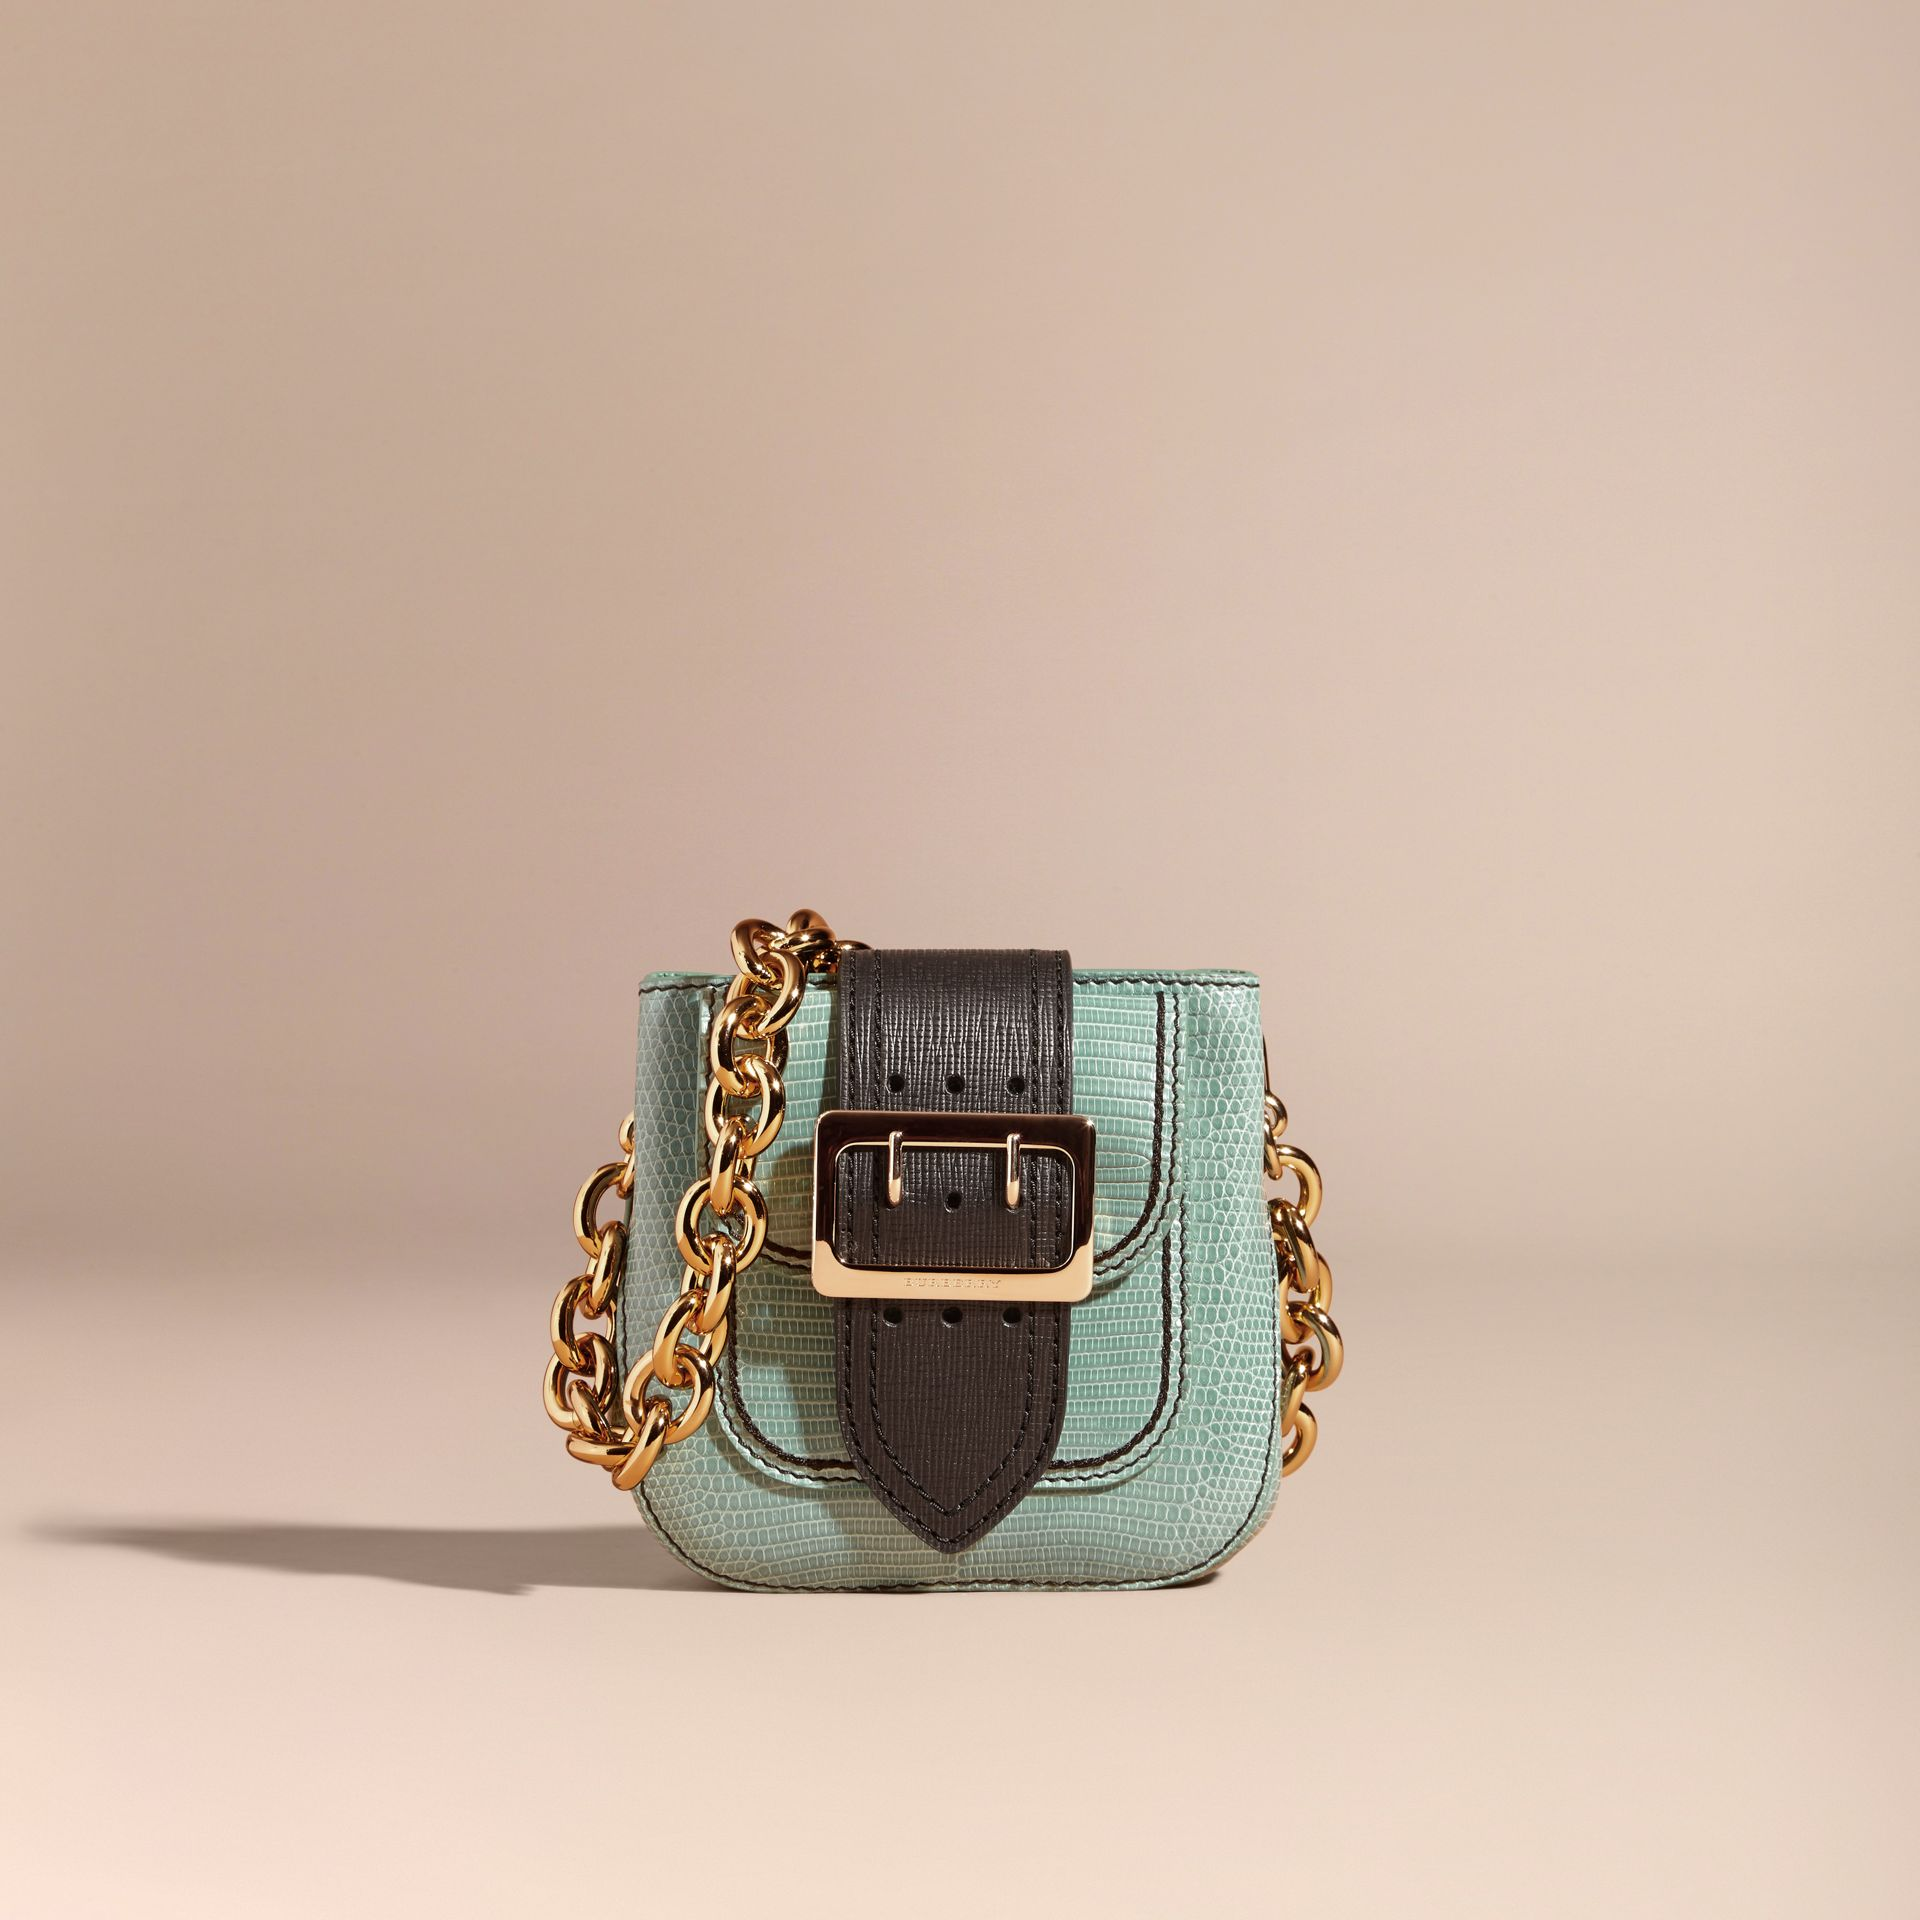 Dusty mint The Small Square Buckle Bag in Lizard - gallery image 7